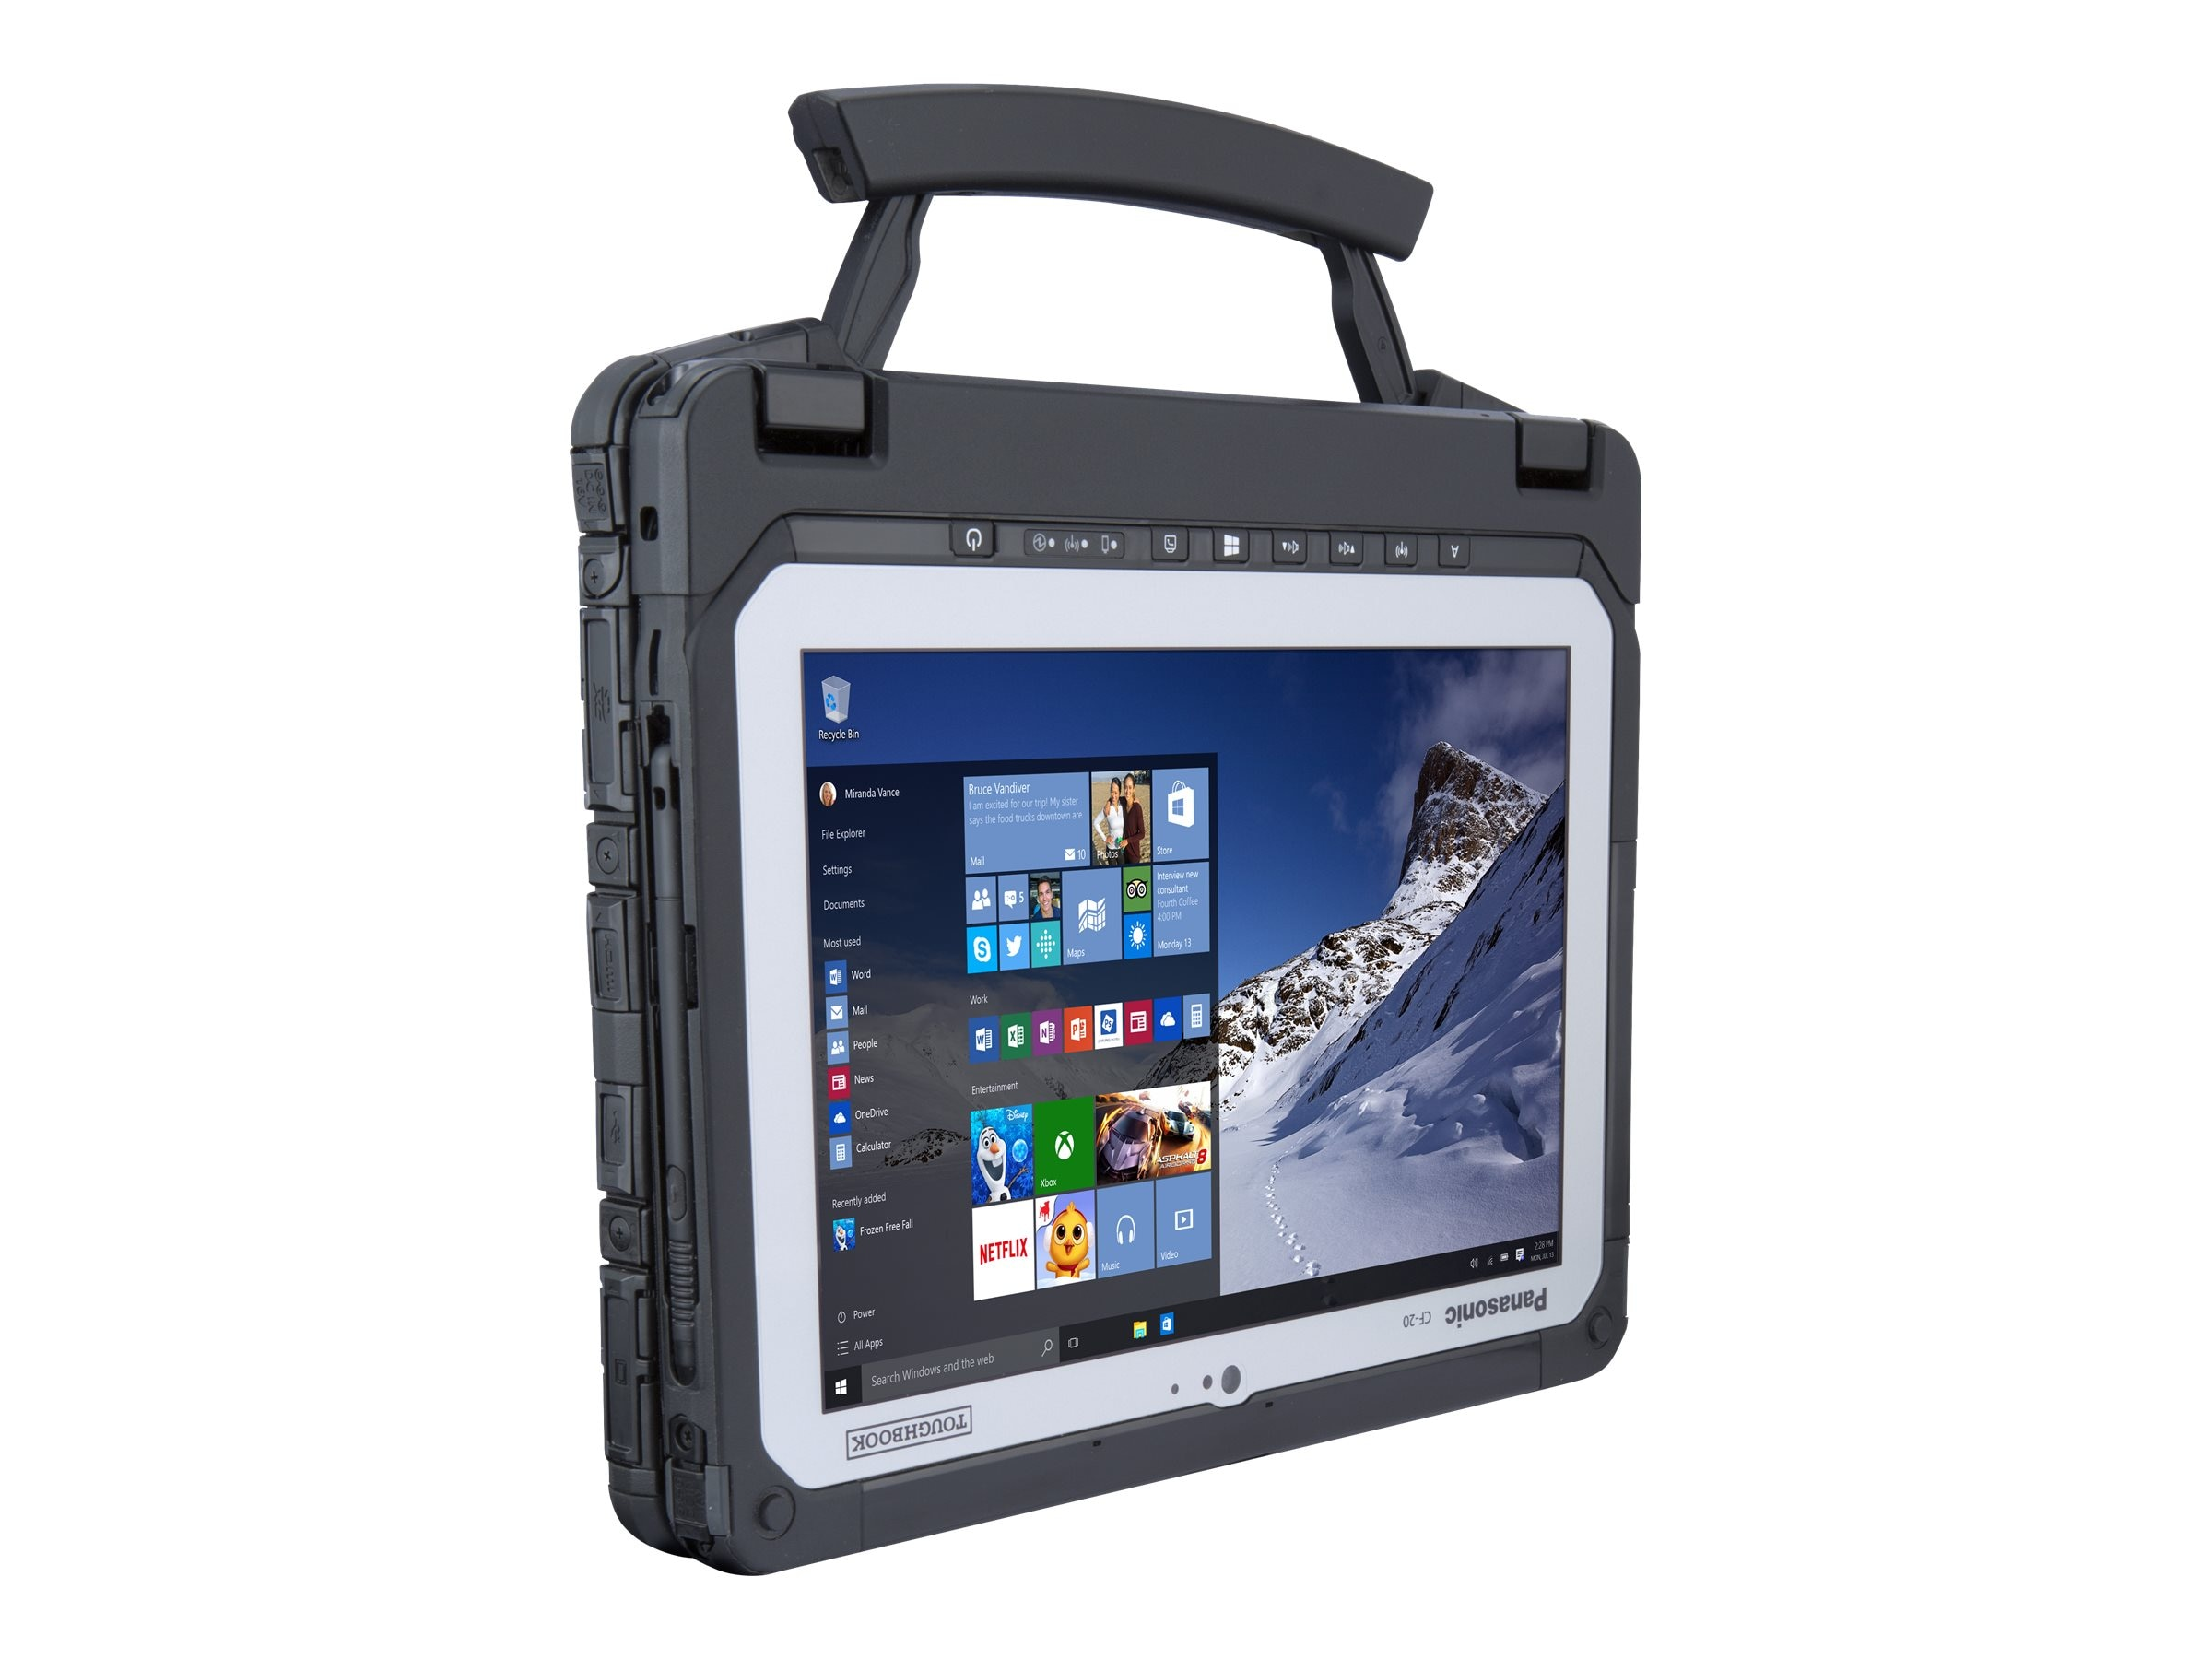 Panasonic Toughbook 20 Core M5-6Y57 1.1GHz 10.1, CF-20A0-00KM